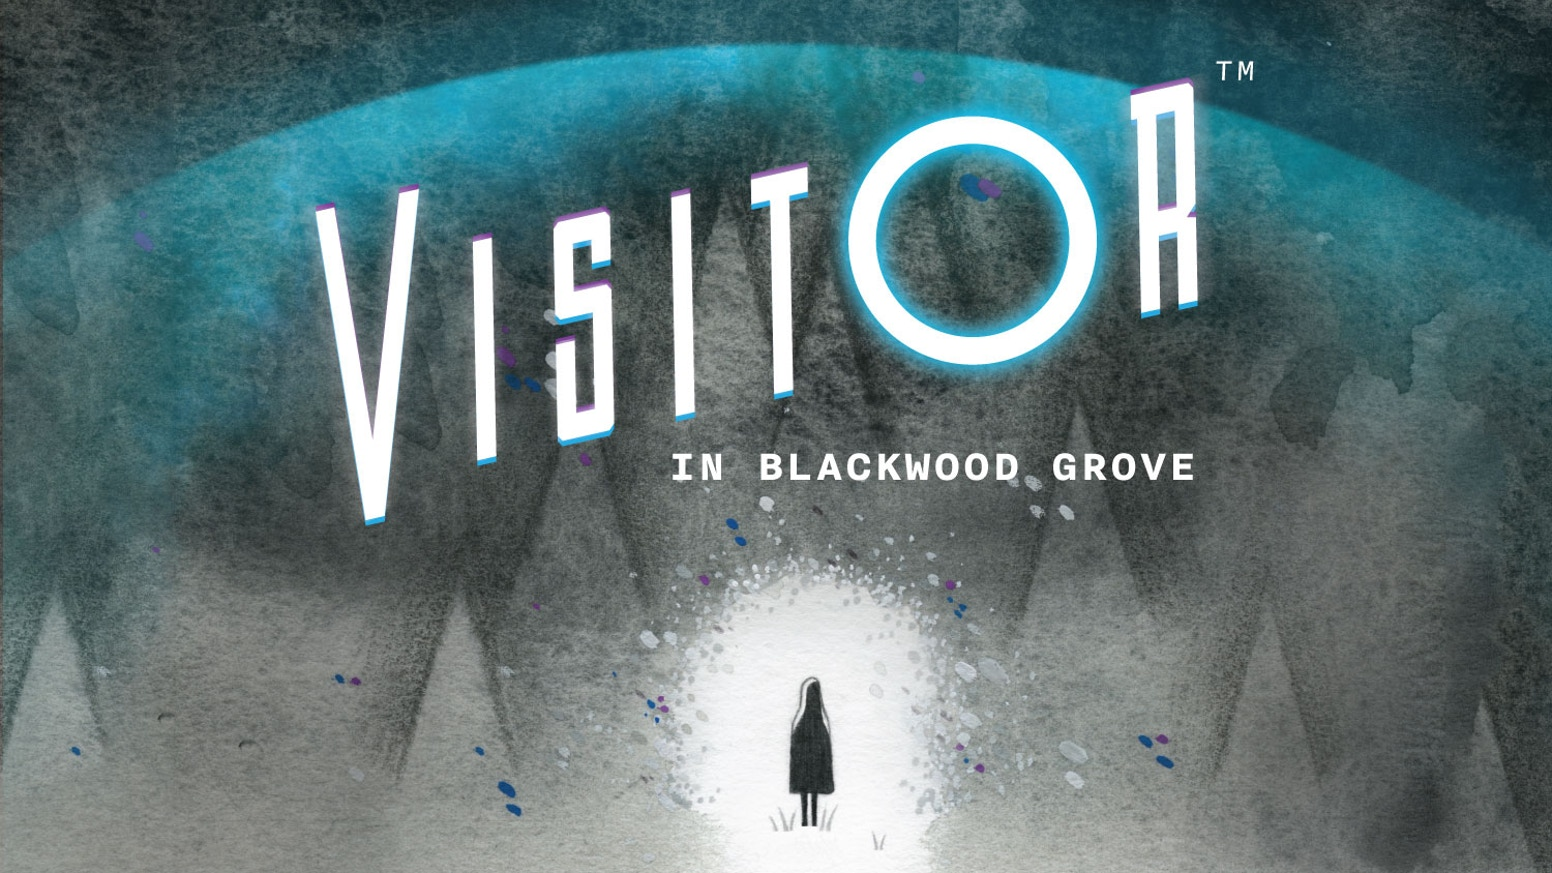 A mysterious Visitor has crashed in Blackwood Grove. Race to figure out the secret rule as the Agent or the Kid in this induction game!